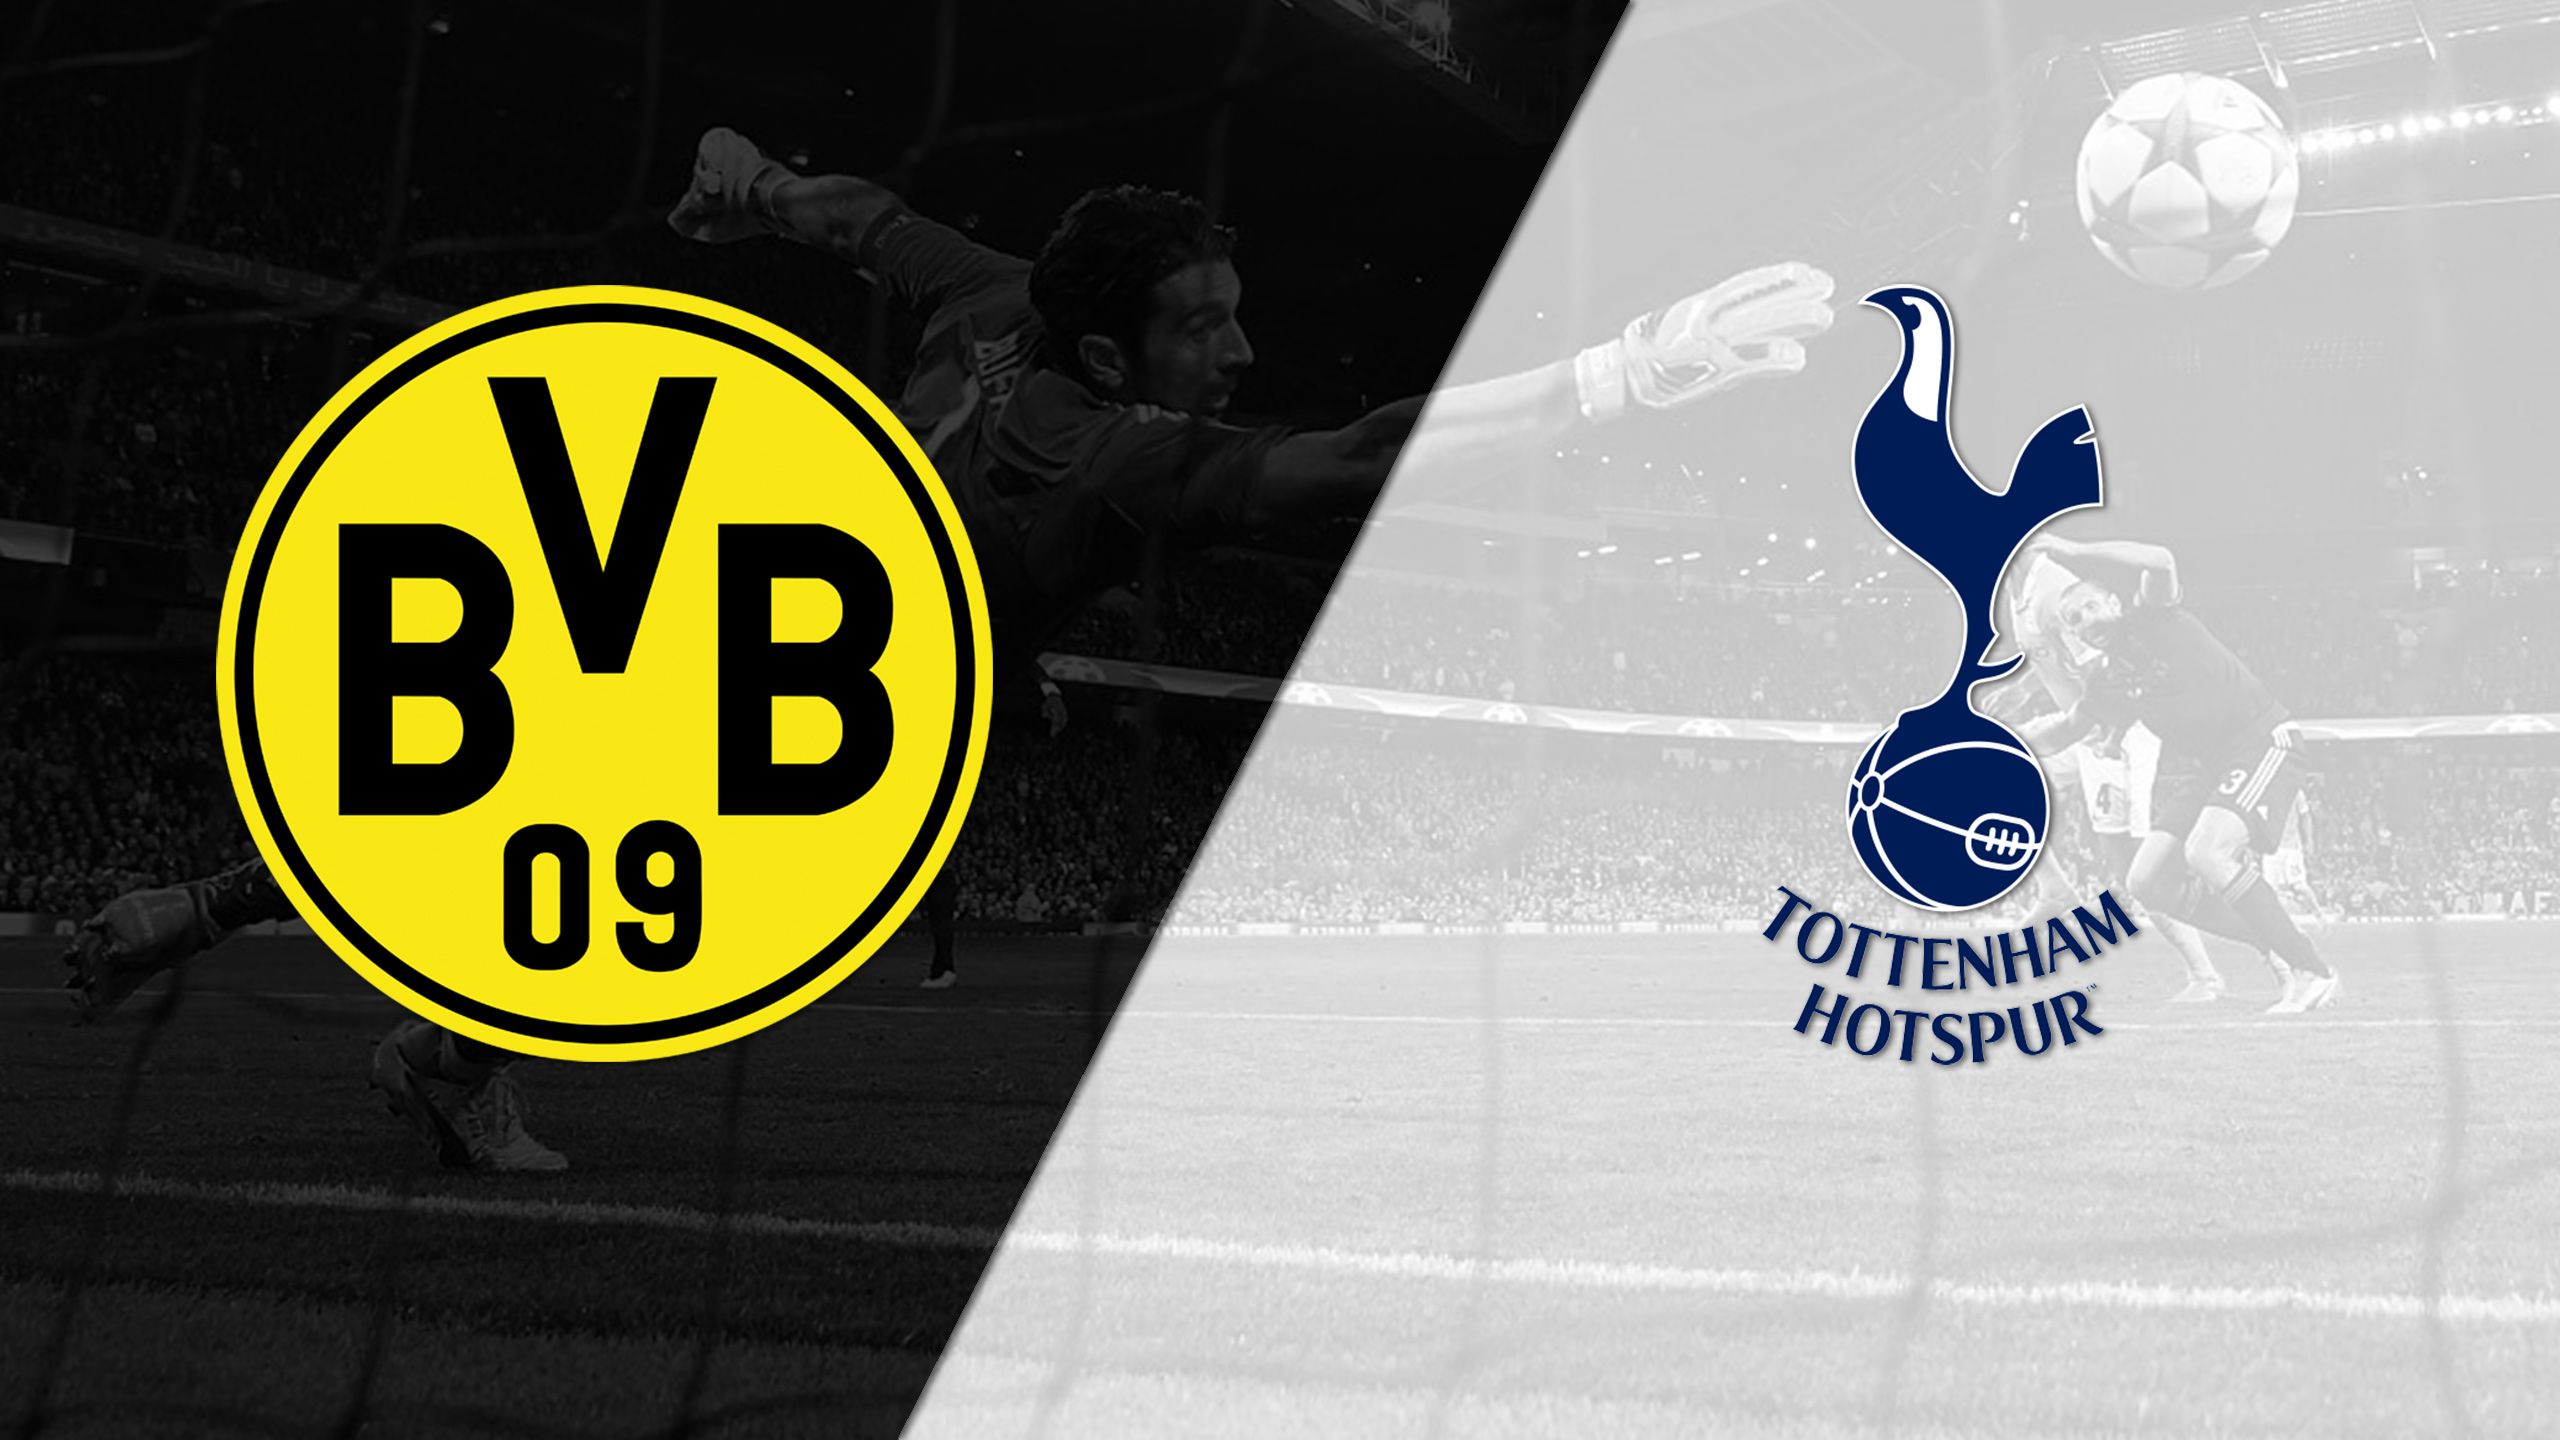 In Spanish - Borussia Dortmund vs. Tottenham Hotspur (Group Stage #5) (UEFA Champions League) (re-air)